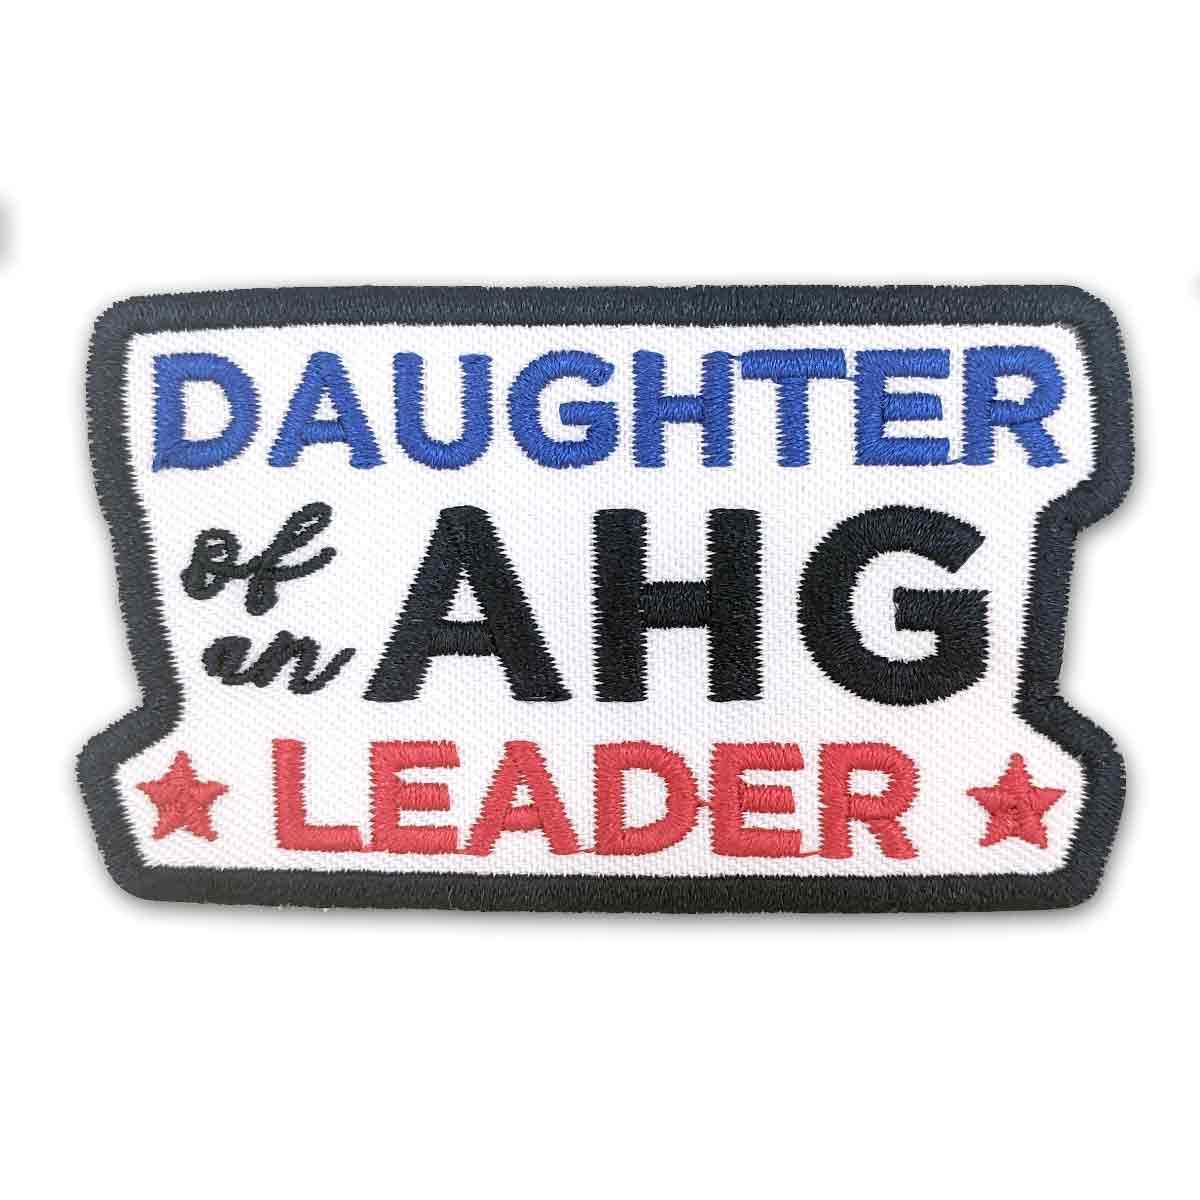 Ahg Daughter Of A Leader Patch 4130 Uniform Accessories